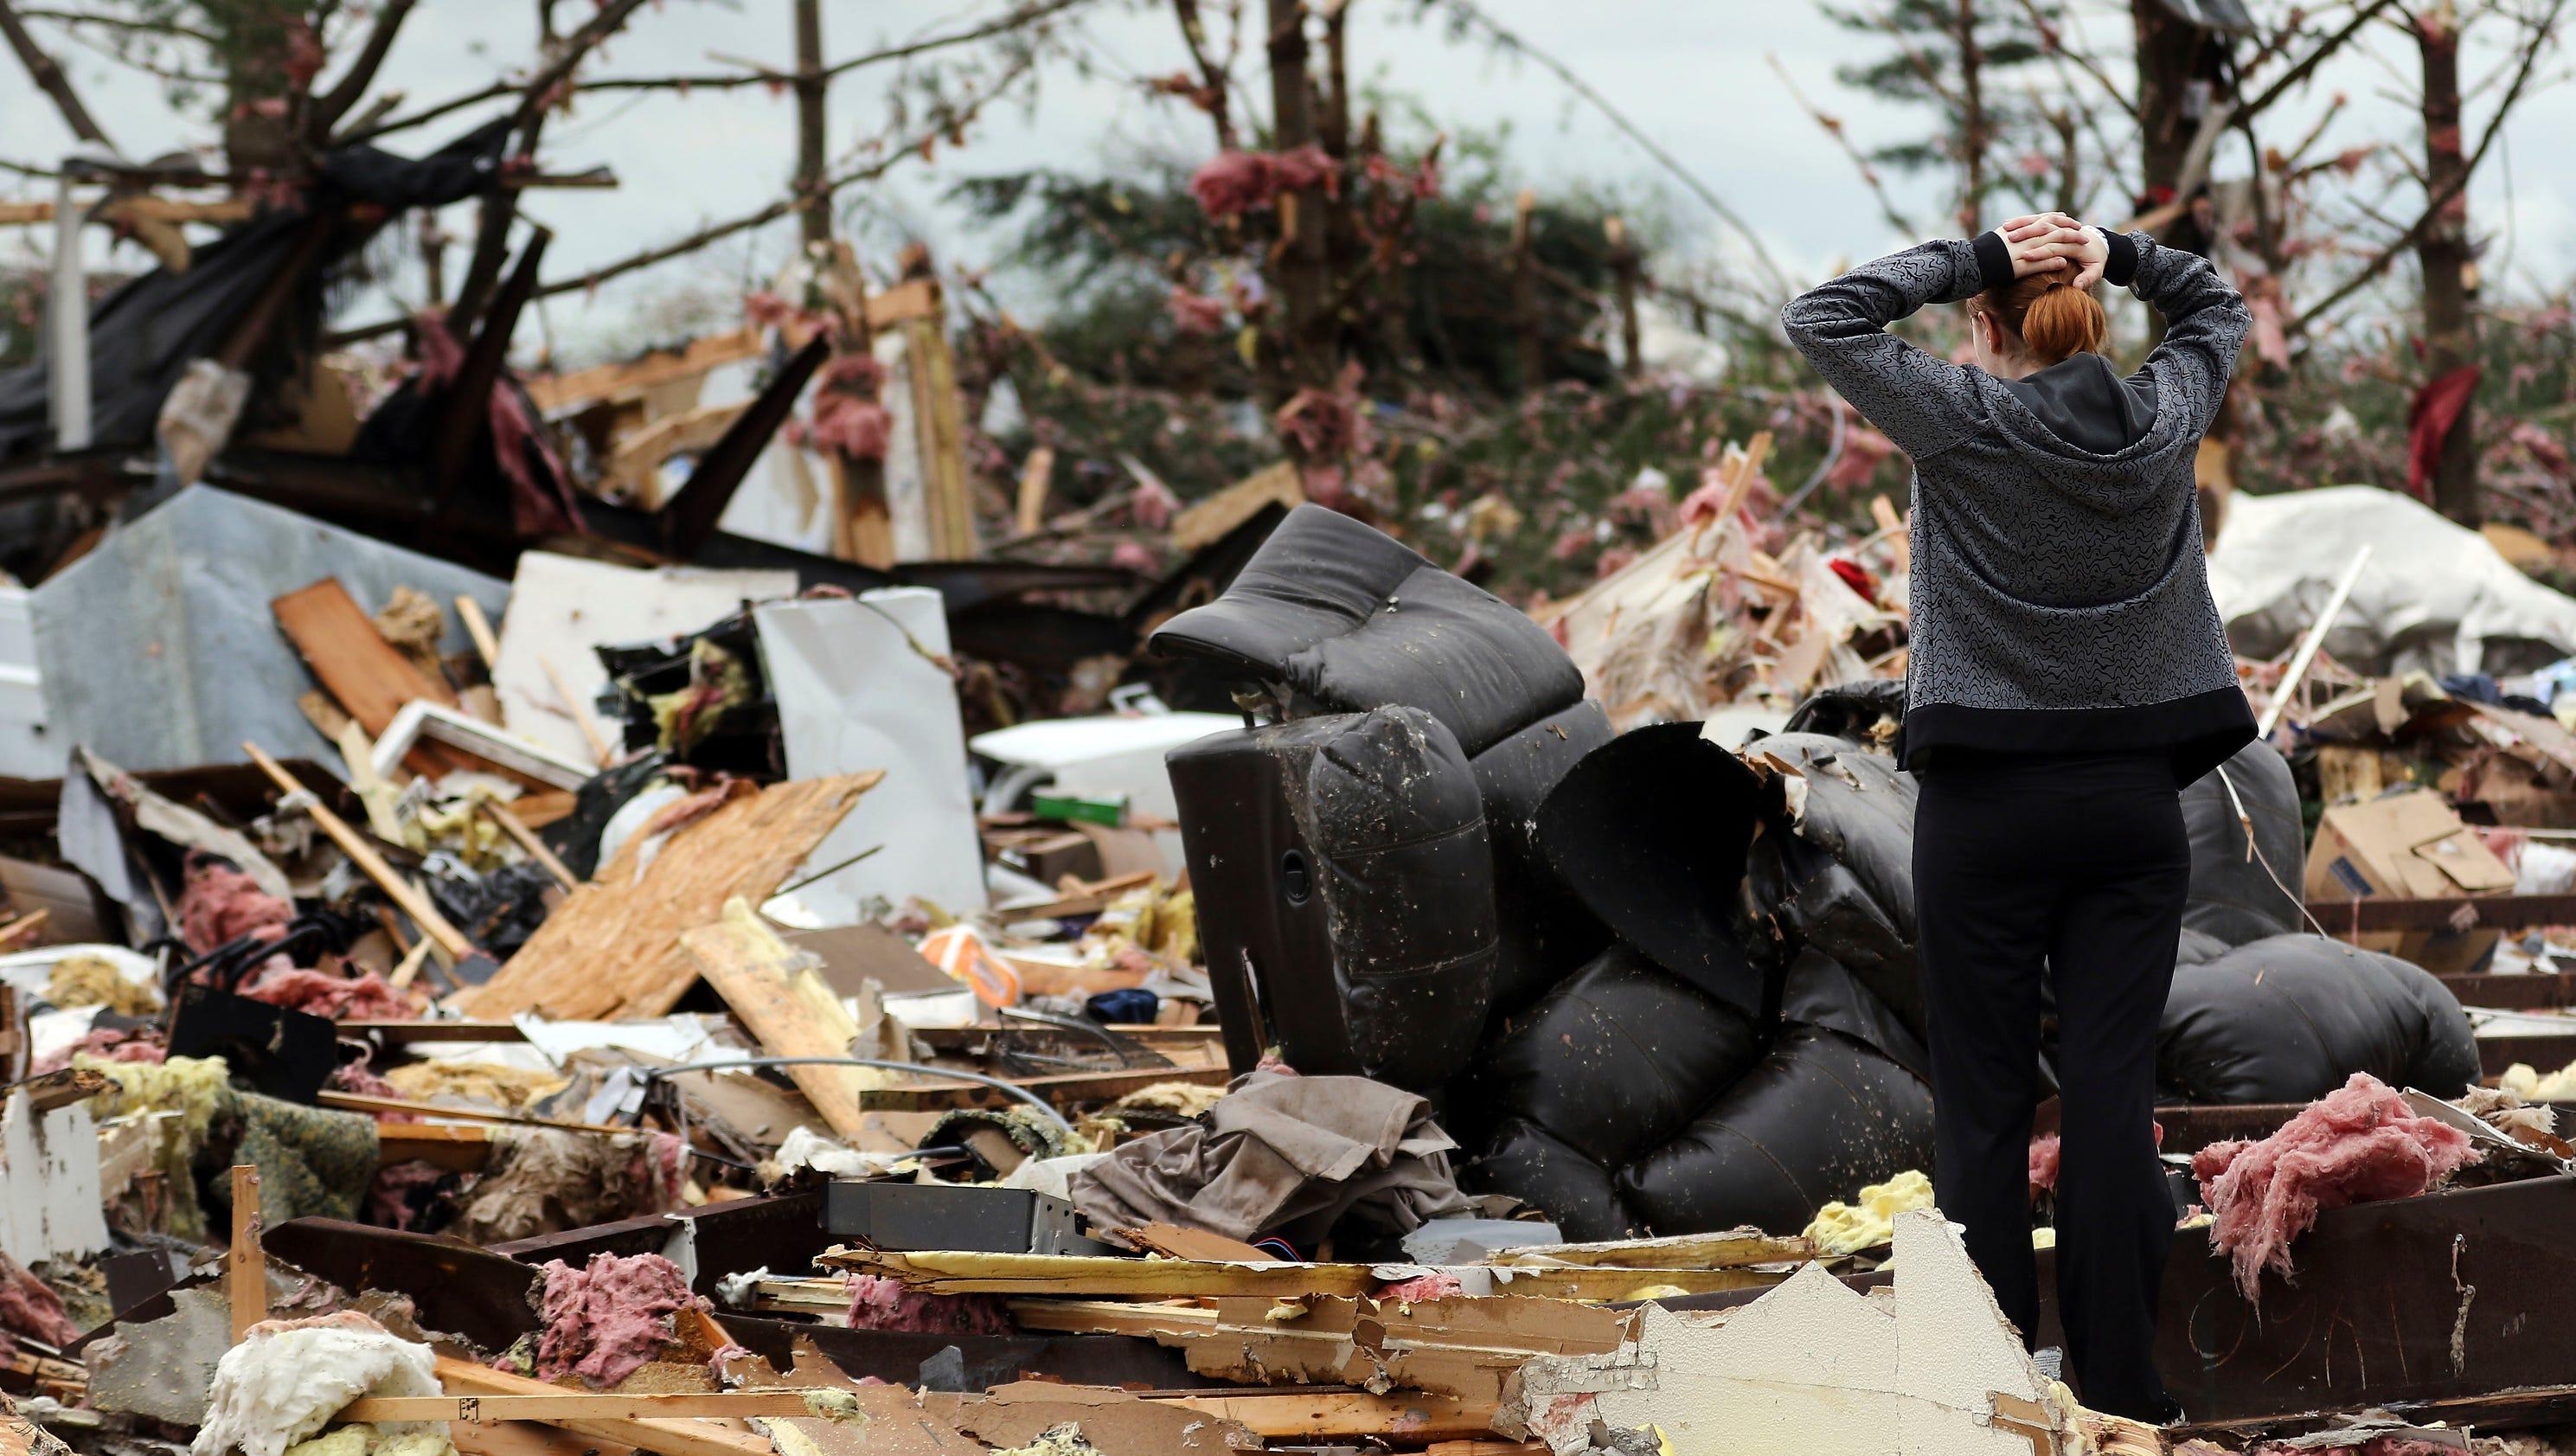 tornado chat sites Charlesletta williams (pictured) and her son jumped in a bathtub when a tornado hit their home in smithland, texas on saturday, surviving after the tub flew spinning.